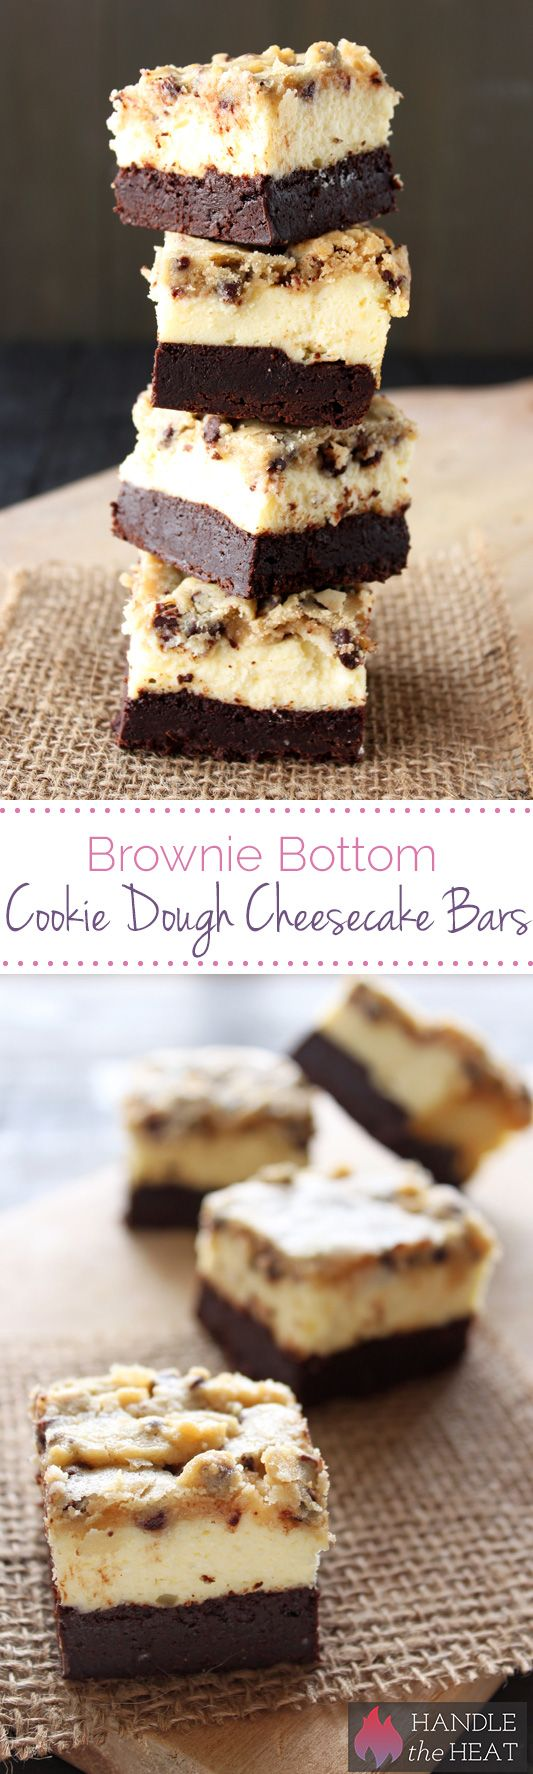 Brownie Bottom Cookie Dough Cheesecake Bars - OUTRAGEOUS!